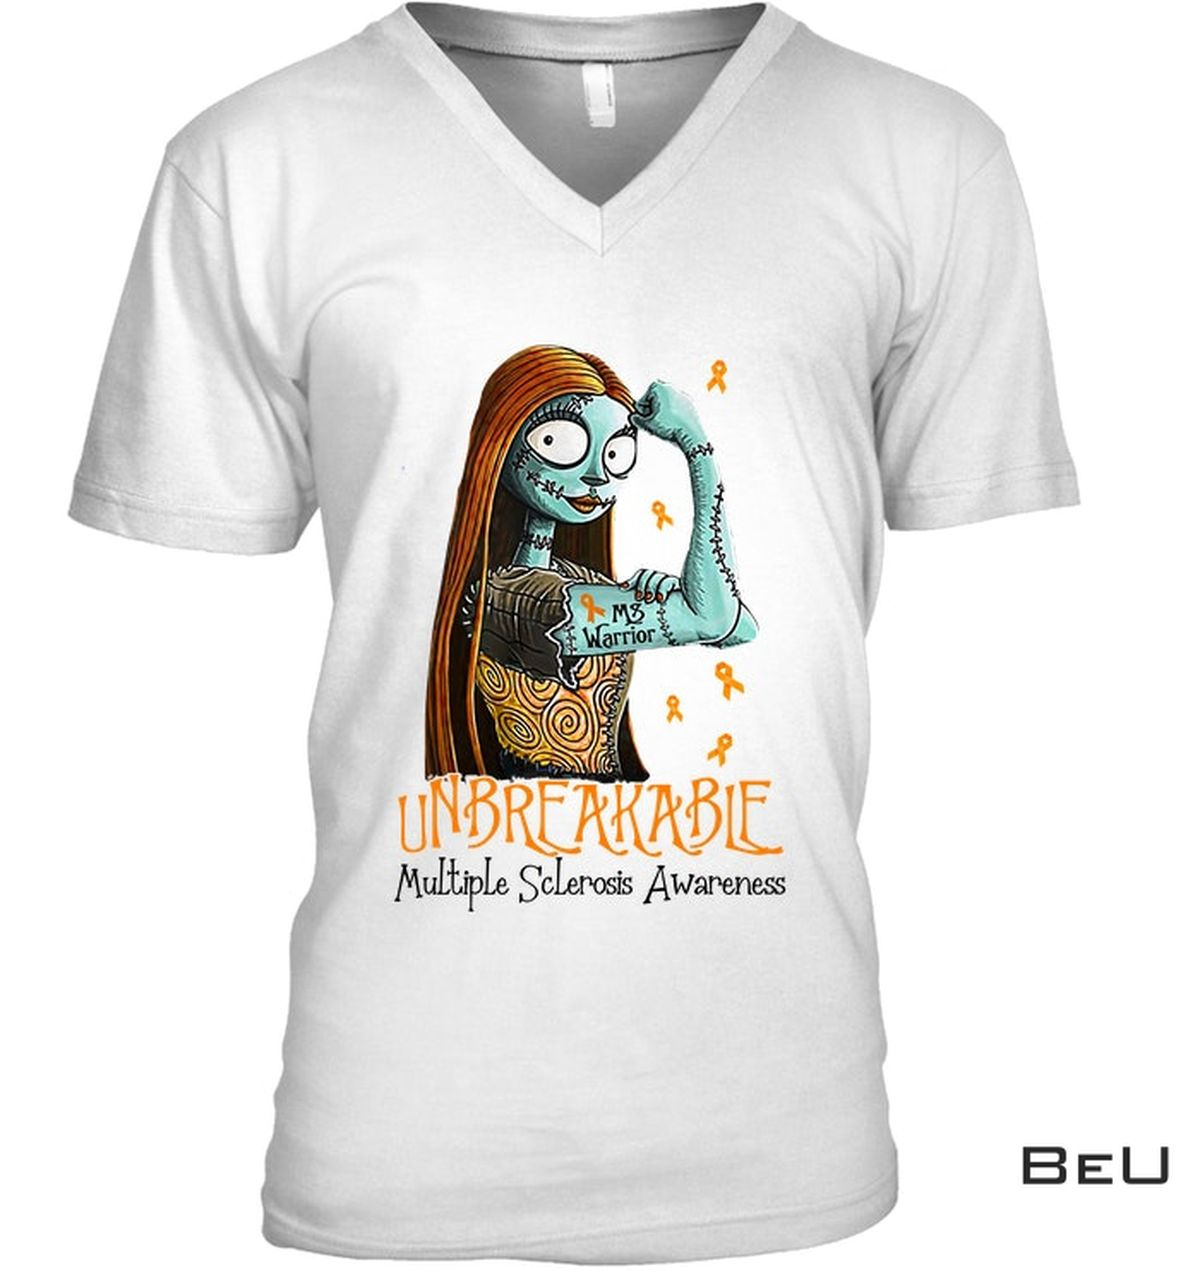 Only For Fan Sally Unbreakable Multiple Sclerosis Awareness Shirt